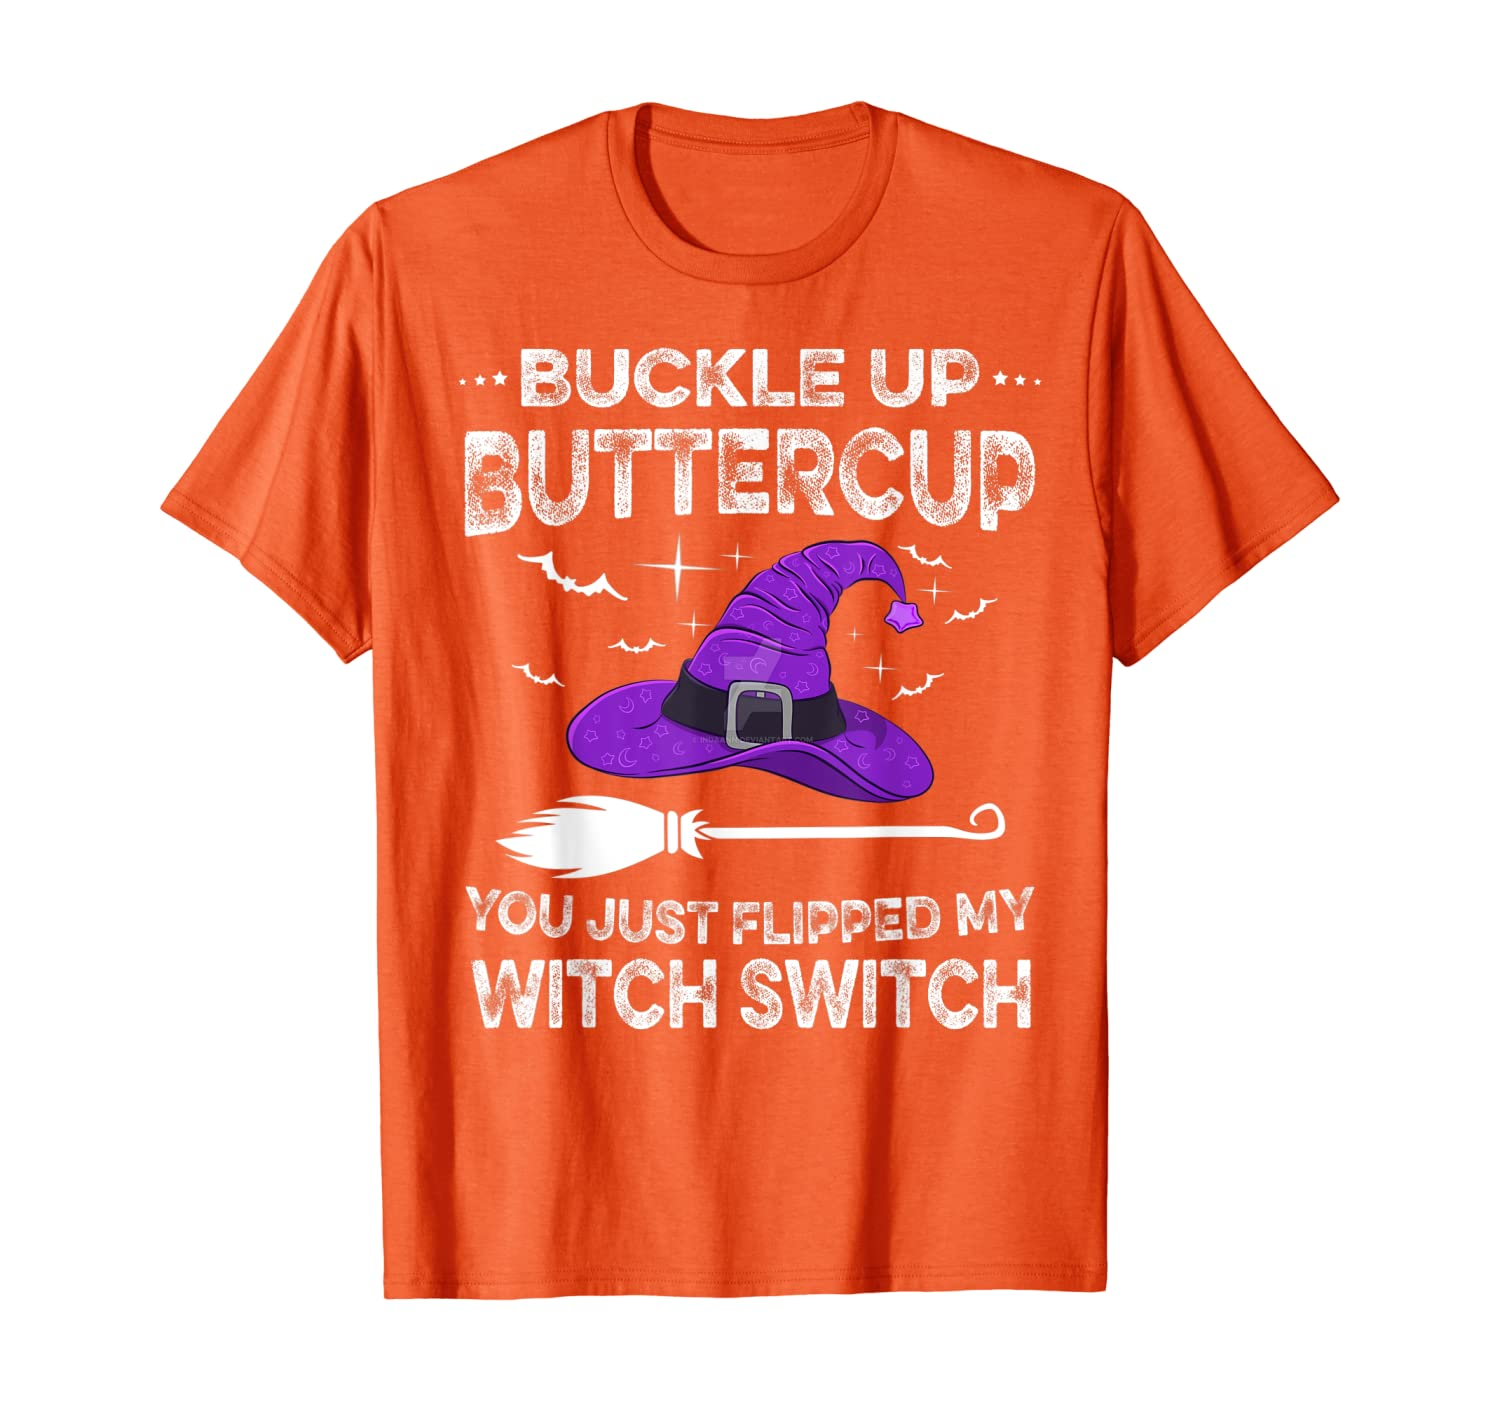 Happy Halloween Shirt Buckle Up Buttercup Witch Switch Funny T-Shirt